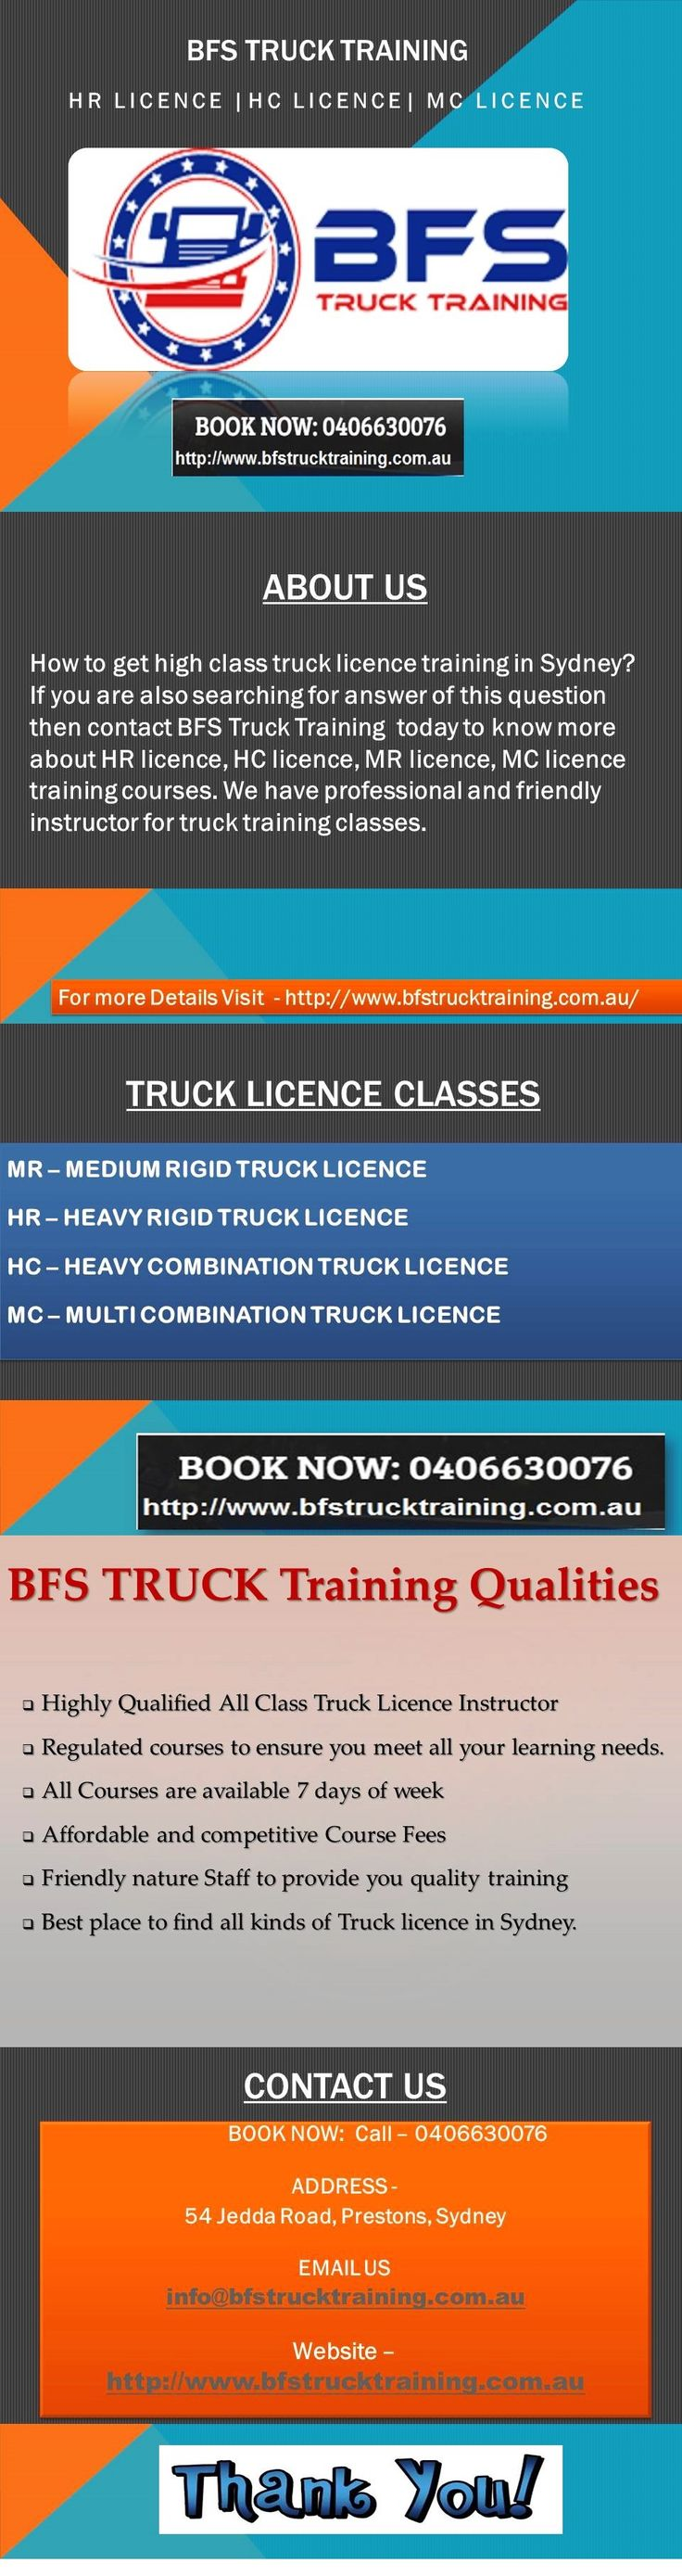 Best School for HC Licence Training - BFSTruck Training -How to get high class truck licence training in Sydney? If you are also searching for answer of this question then contact BFSTruck Training today to know more about HR licence, HC licence, MR licence, MC licence training courses. We have professional and friendly instructor for truck training classes.